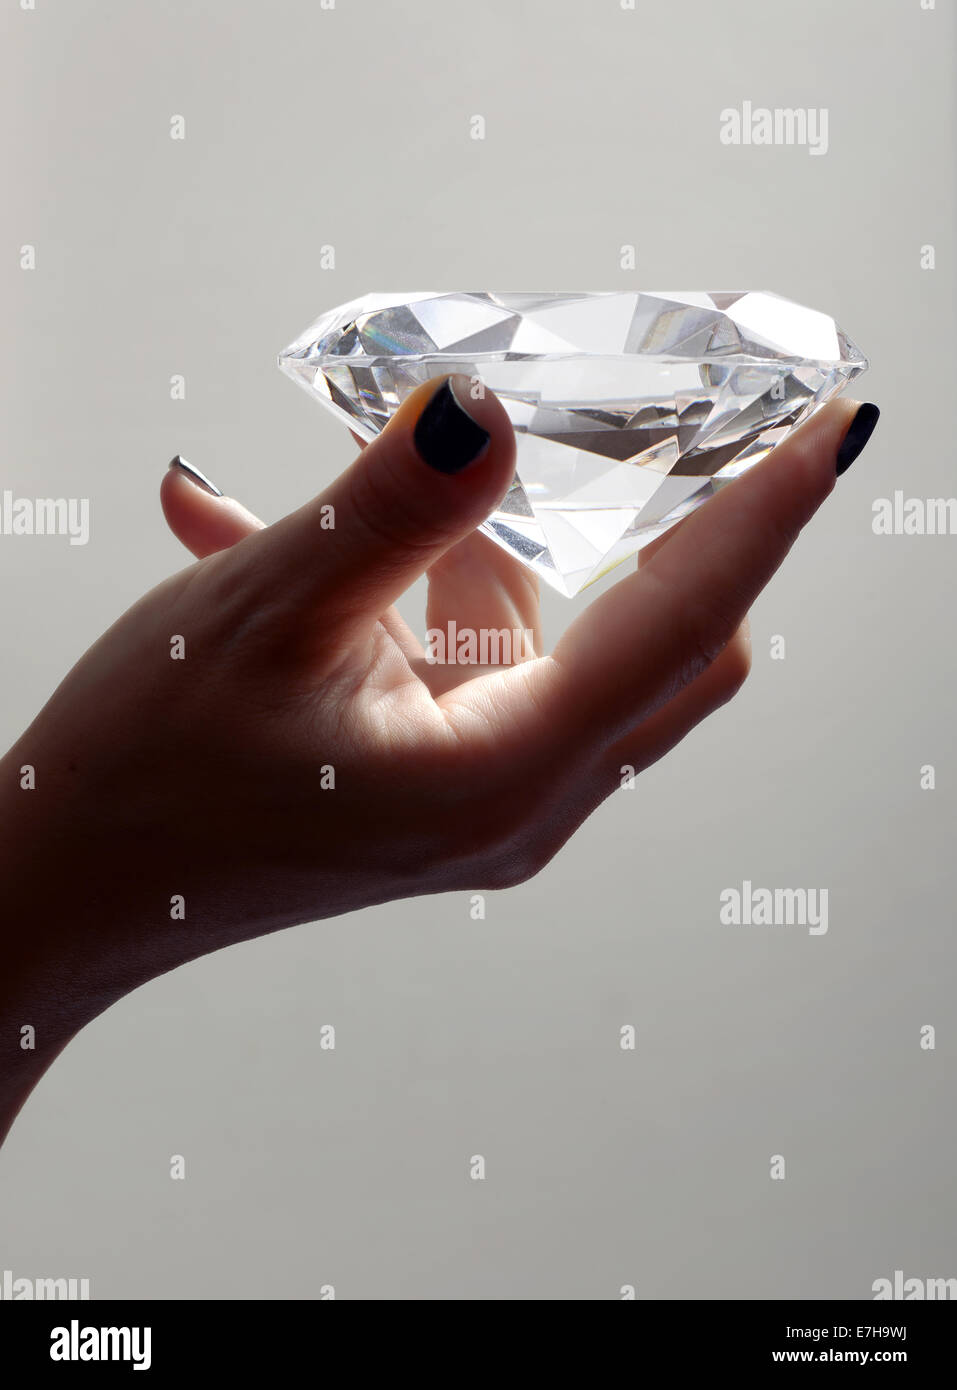 Female Hand Holding Over sized Illuminated Diamond in Studio with Grey Background - Stock Image